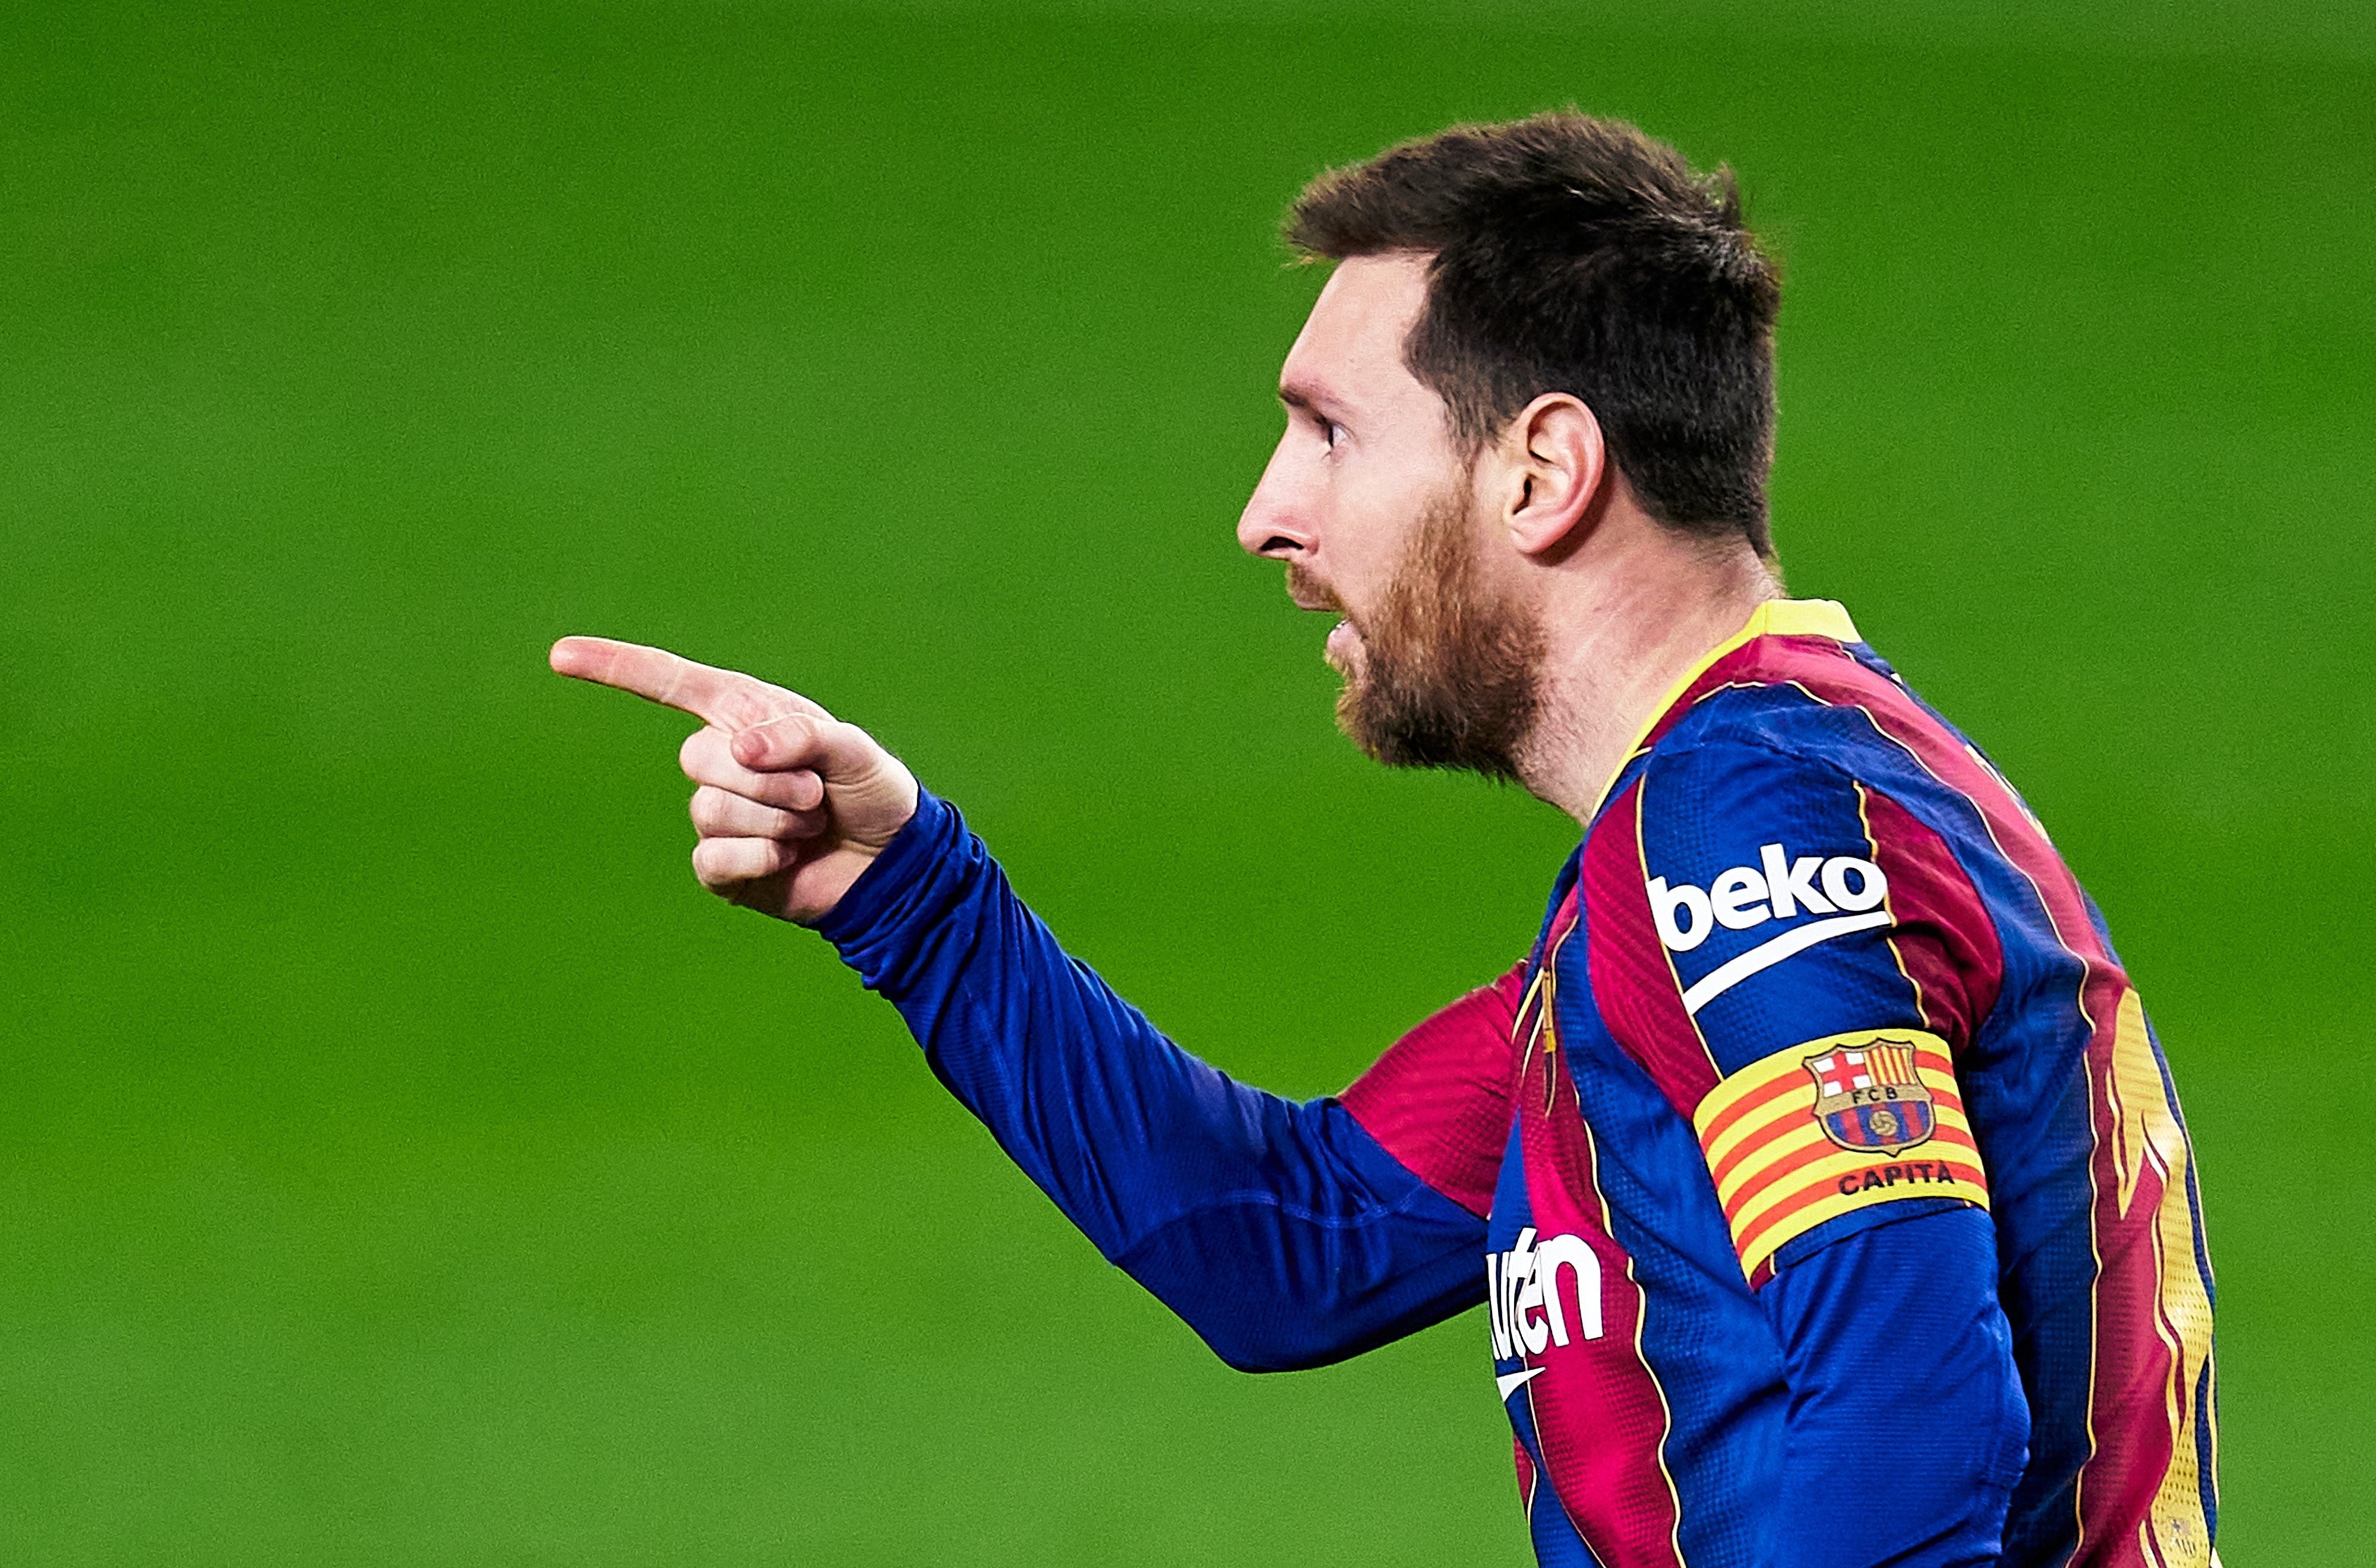 Lionel Messi moves in front of Luis Suarez at top of LaLiga scoring charts with brilliant brace in victory over Elche